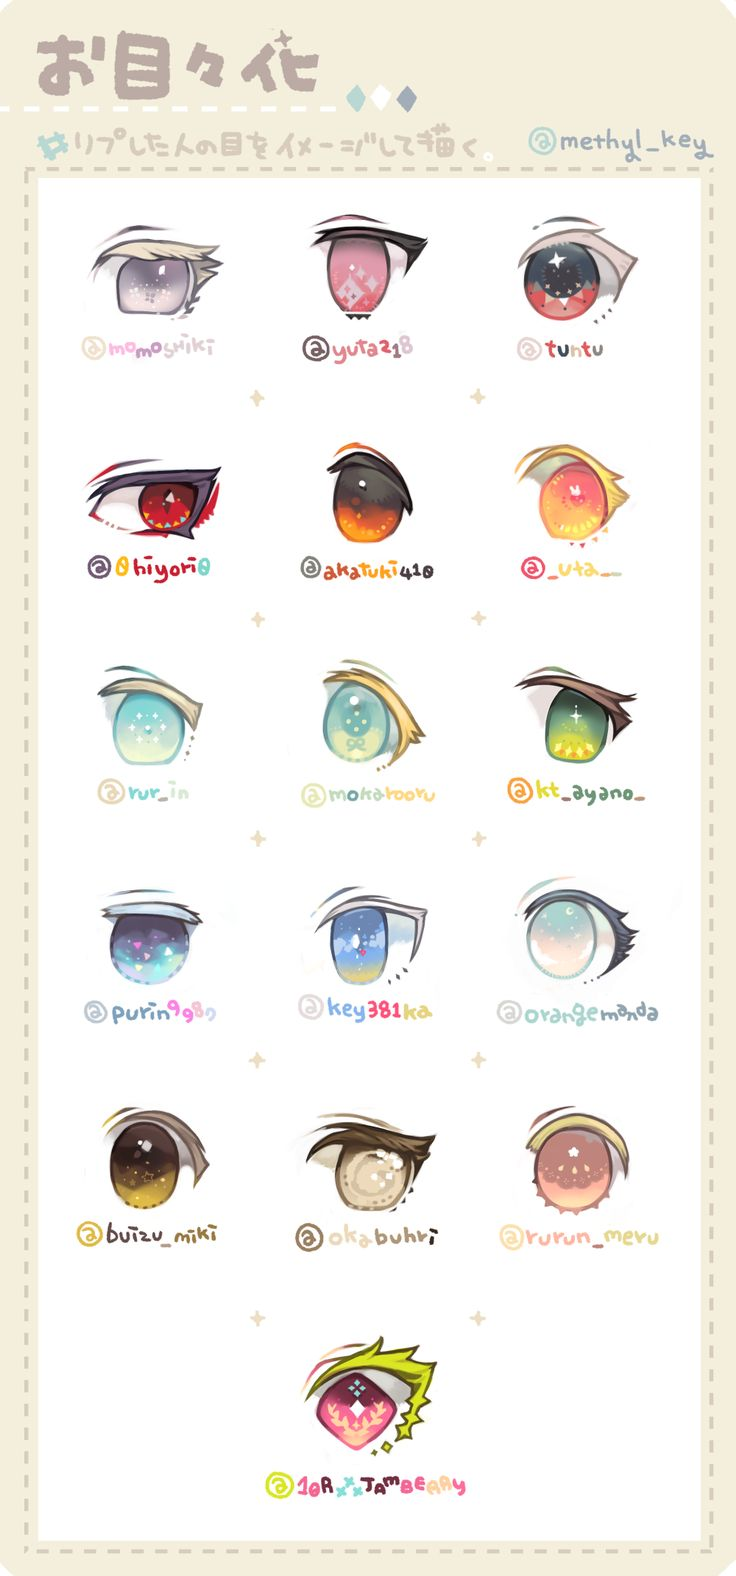 Draw Eyes Based On A Person's Image! ϼ�お目々化 Omemeka